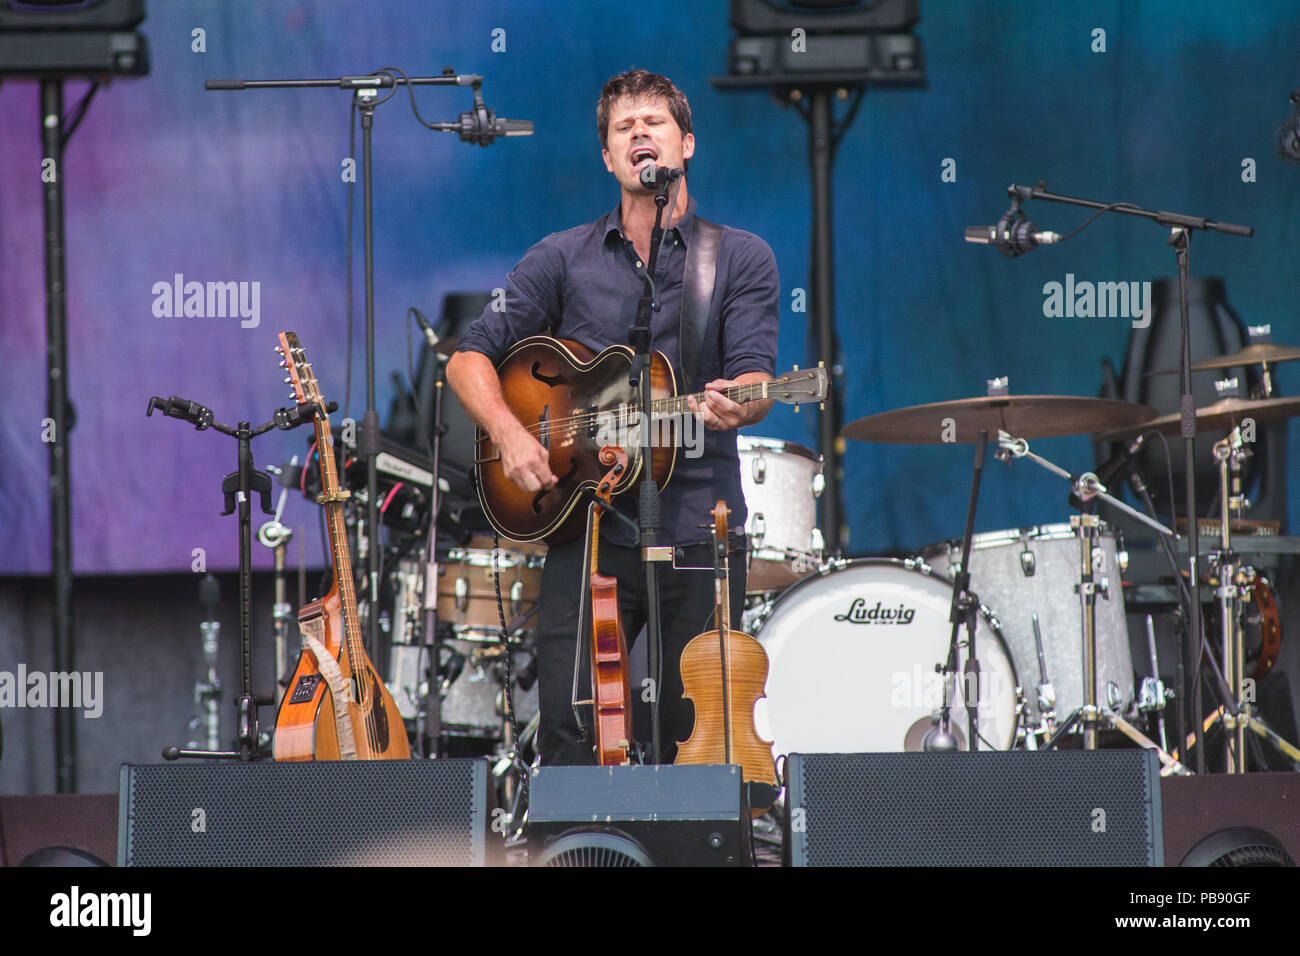 Milan Italy. 27 July 2018. The English singer/songwriter and multi-instrumentalist SETH LAKEMAN perform live at Ippodromo SNAI San Siro during the 'Milano Summer Festival' opening the show of Robert Plant. Credit: Rodolfo Sassano/Alamy Live News - Stock Image